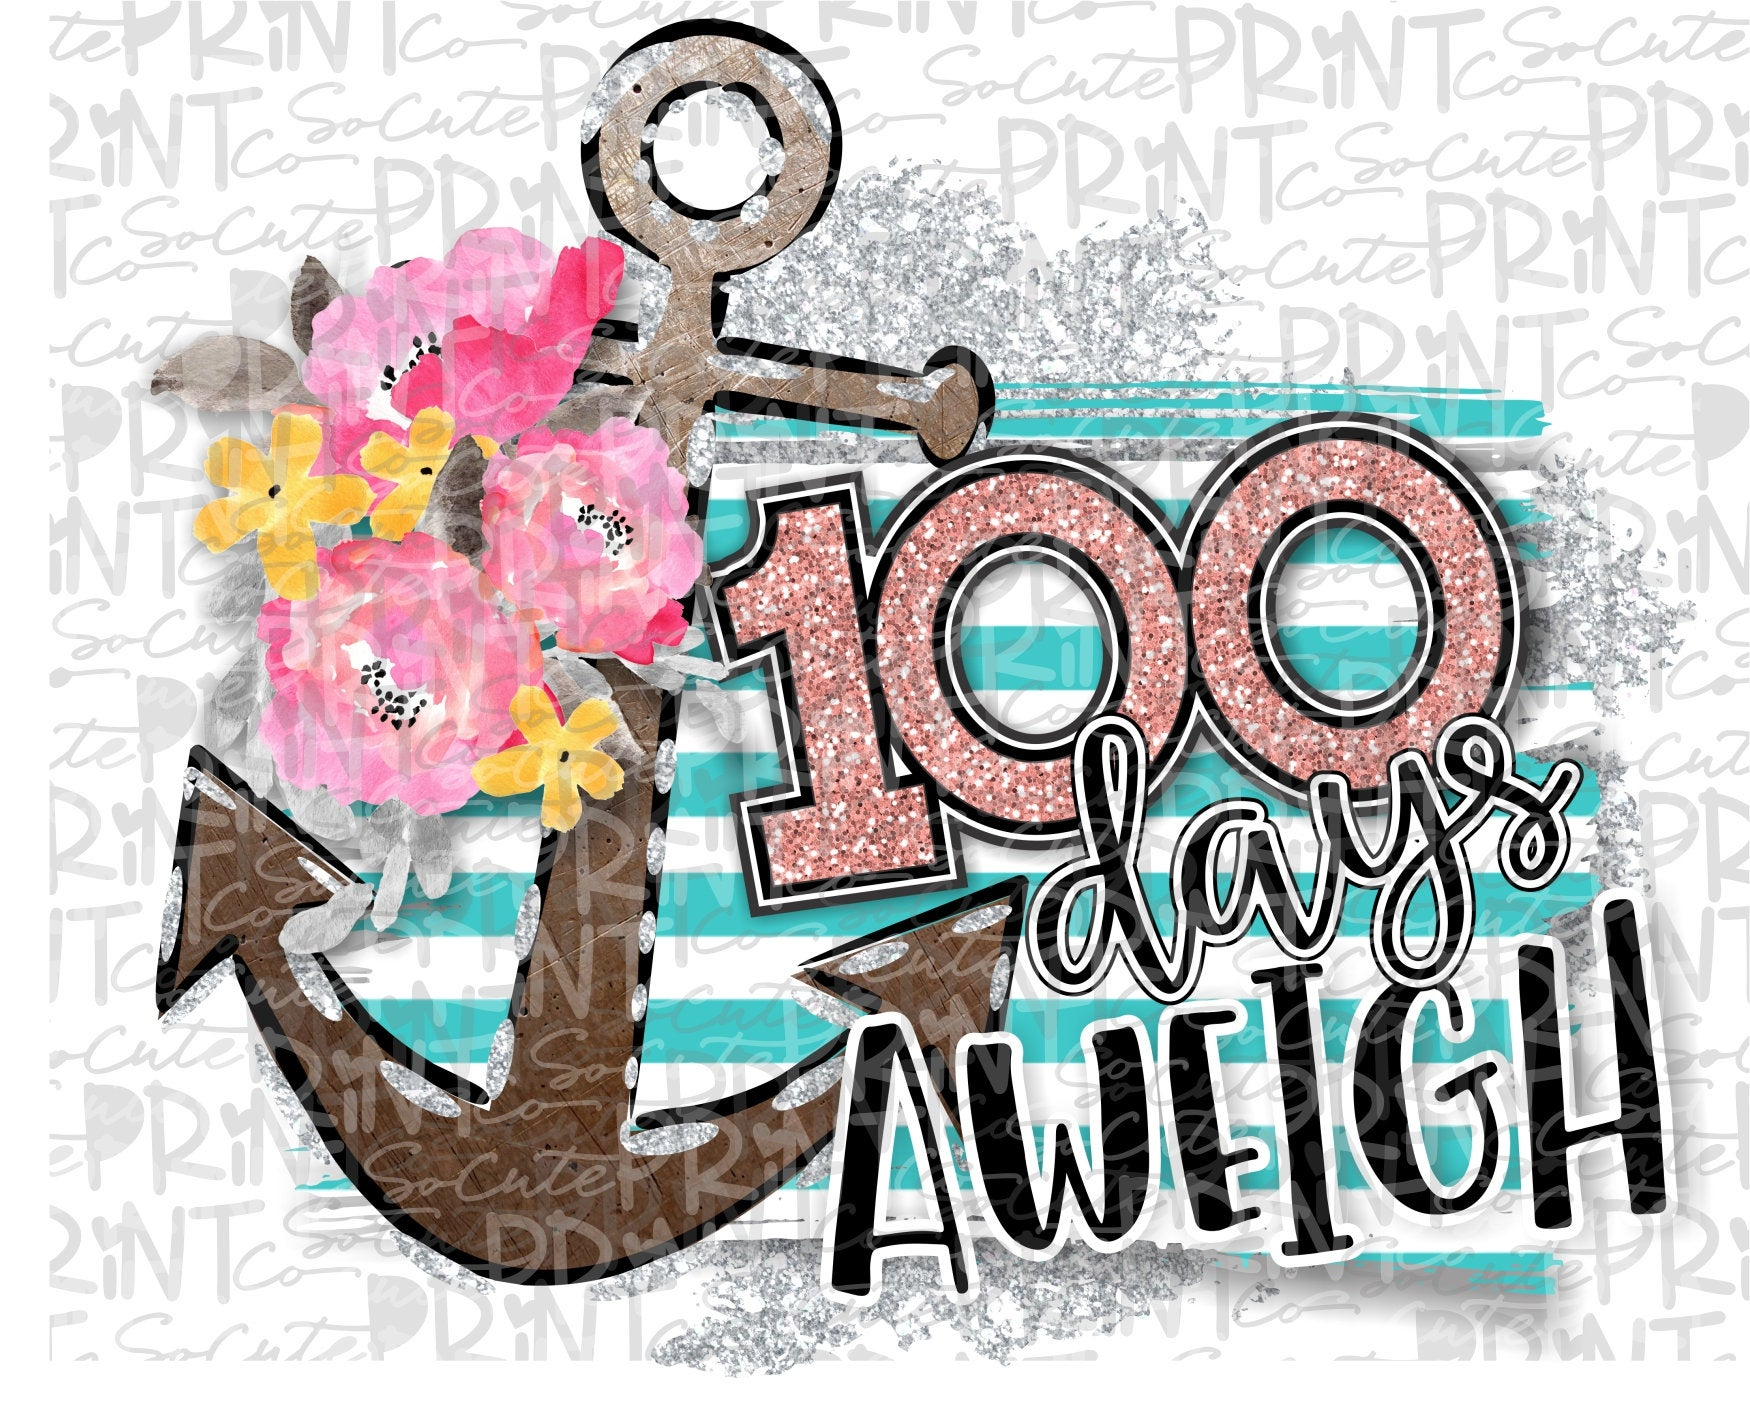 School clipart, 100 days aweigh, School PNG file for sublimation, one  hundred days of school, 100th day of school, anchor clipart.